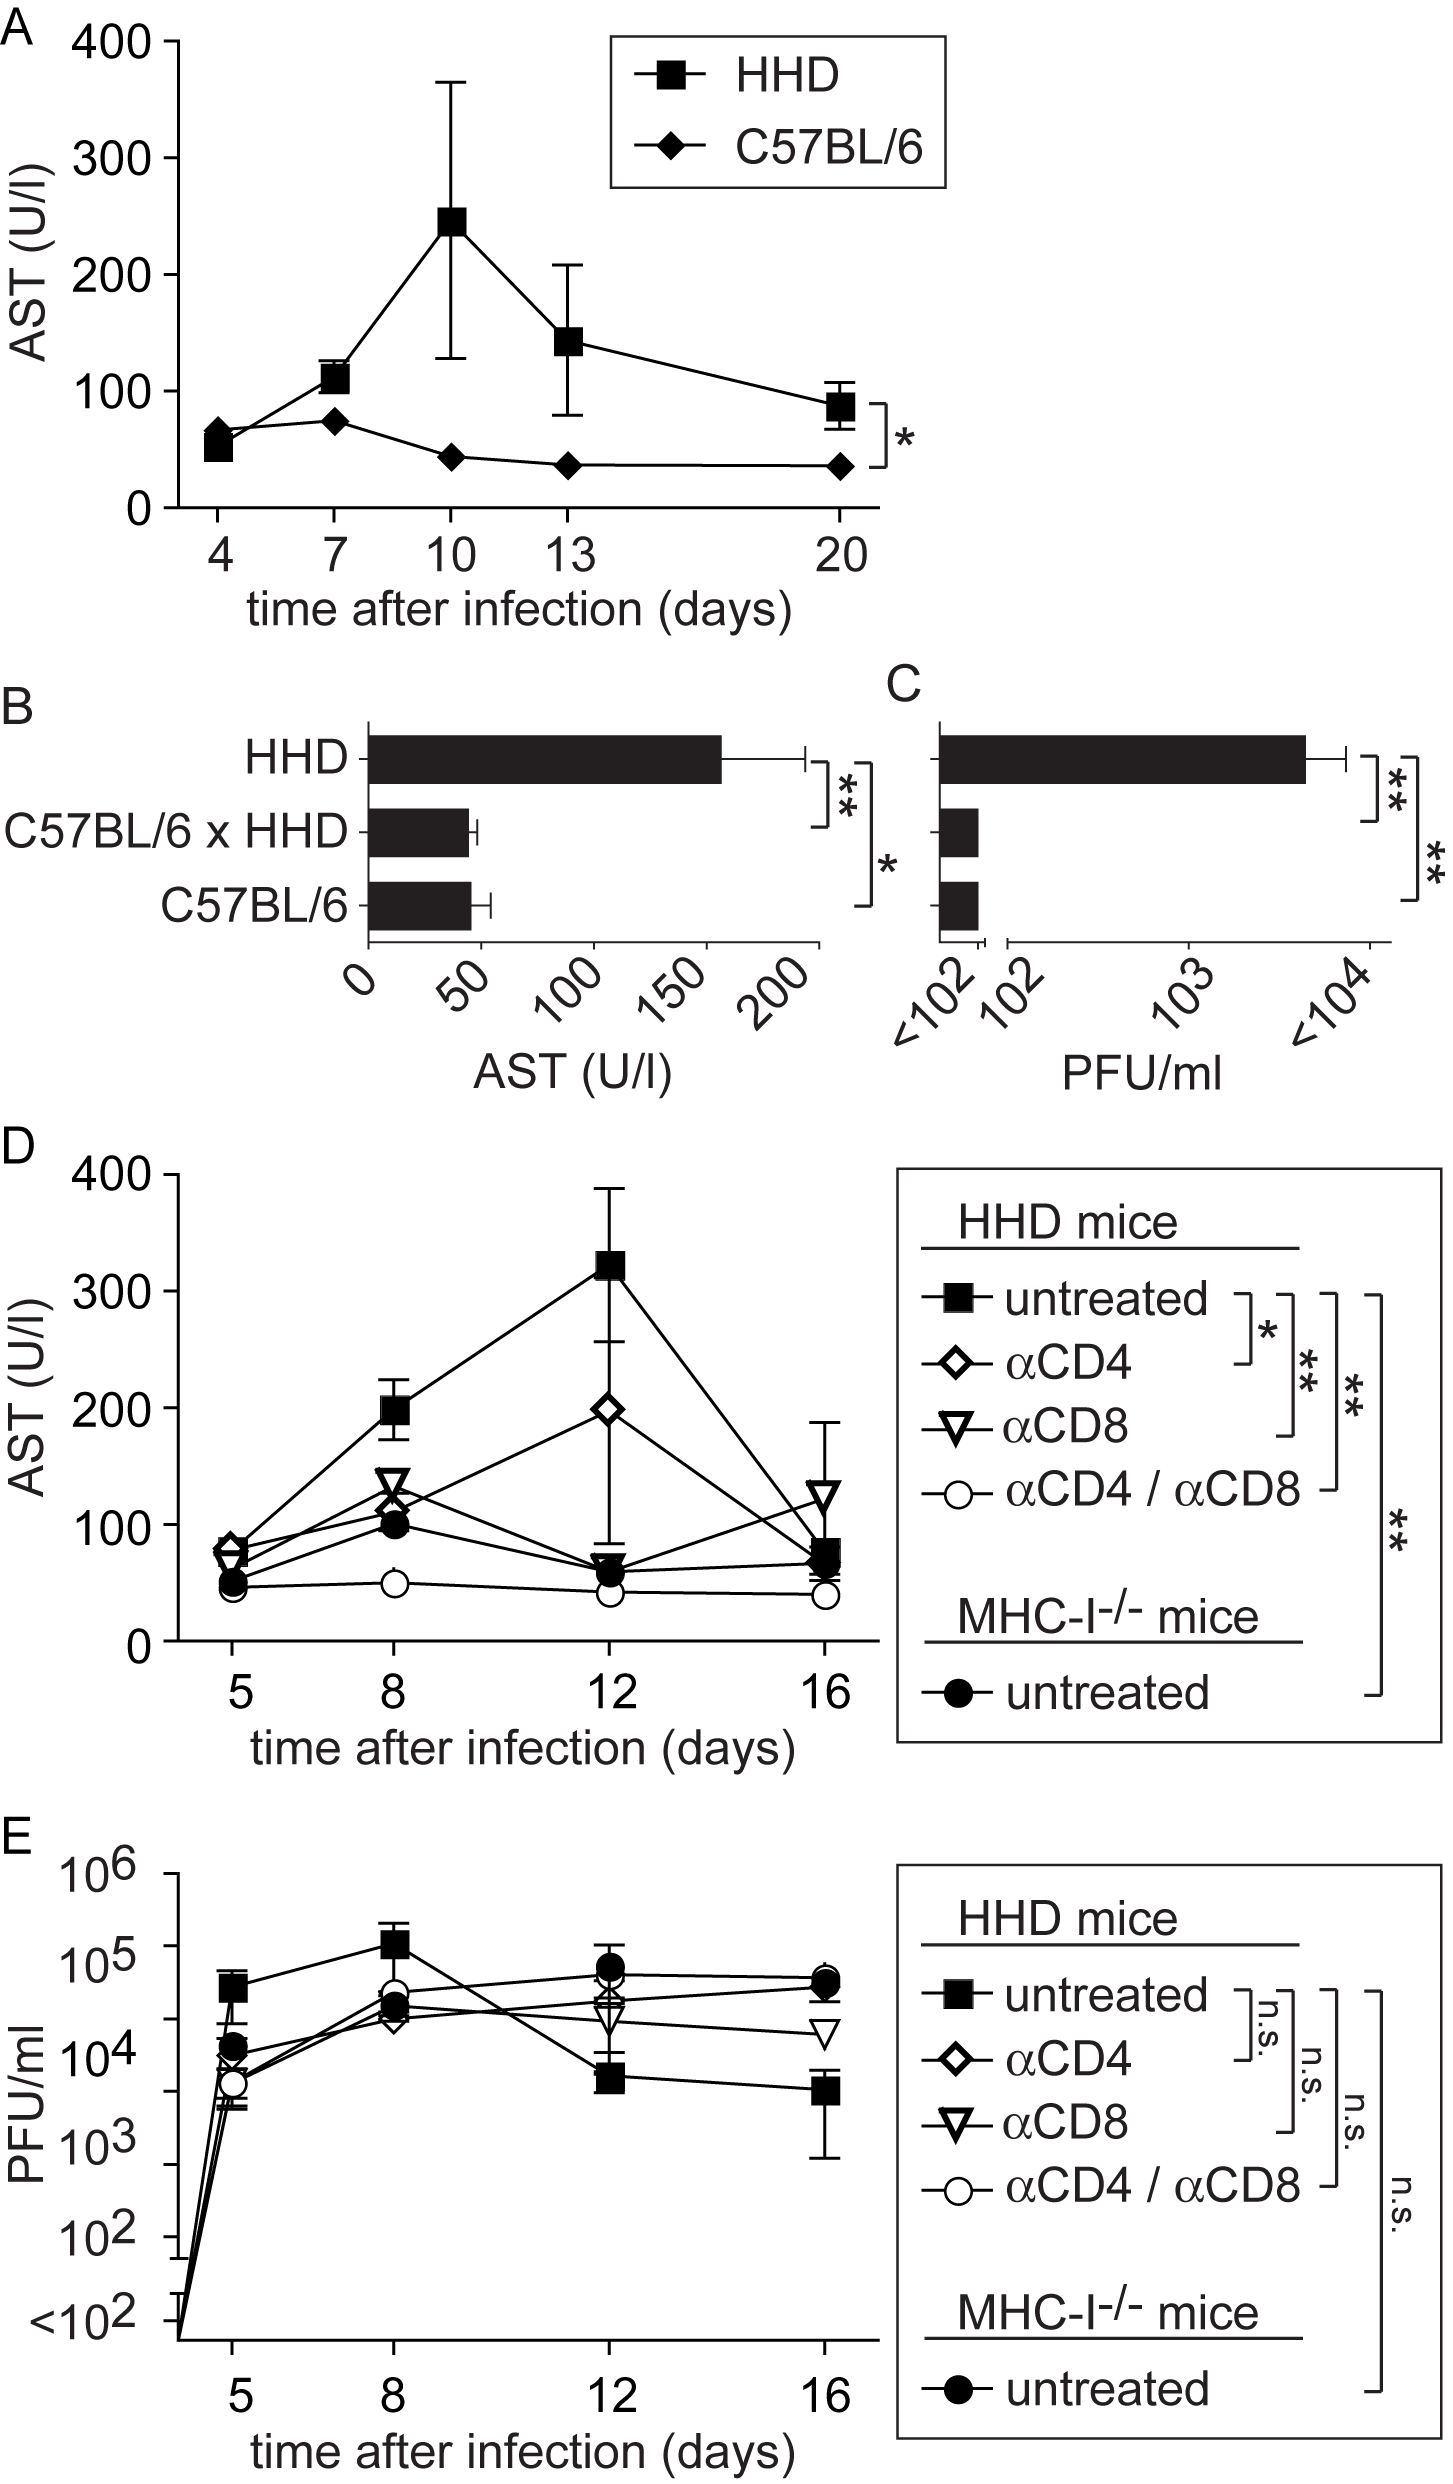 MHC-I- and T cell-dependent AST elevation suggest T cell-dependent immunopathogenesis of LF.